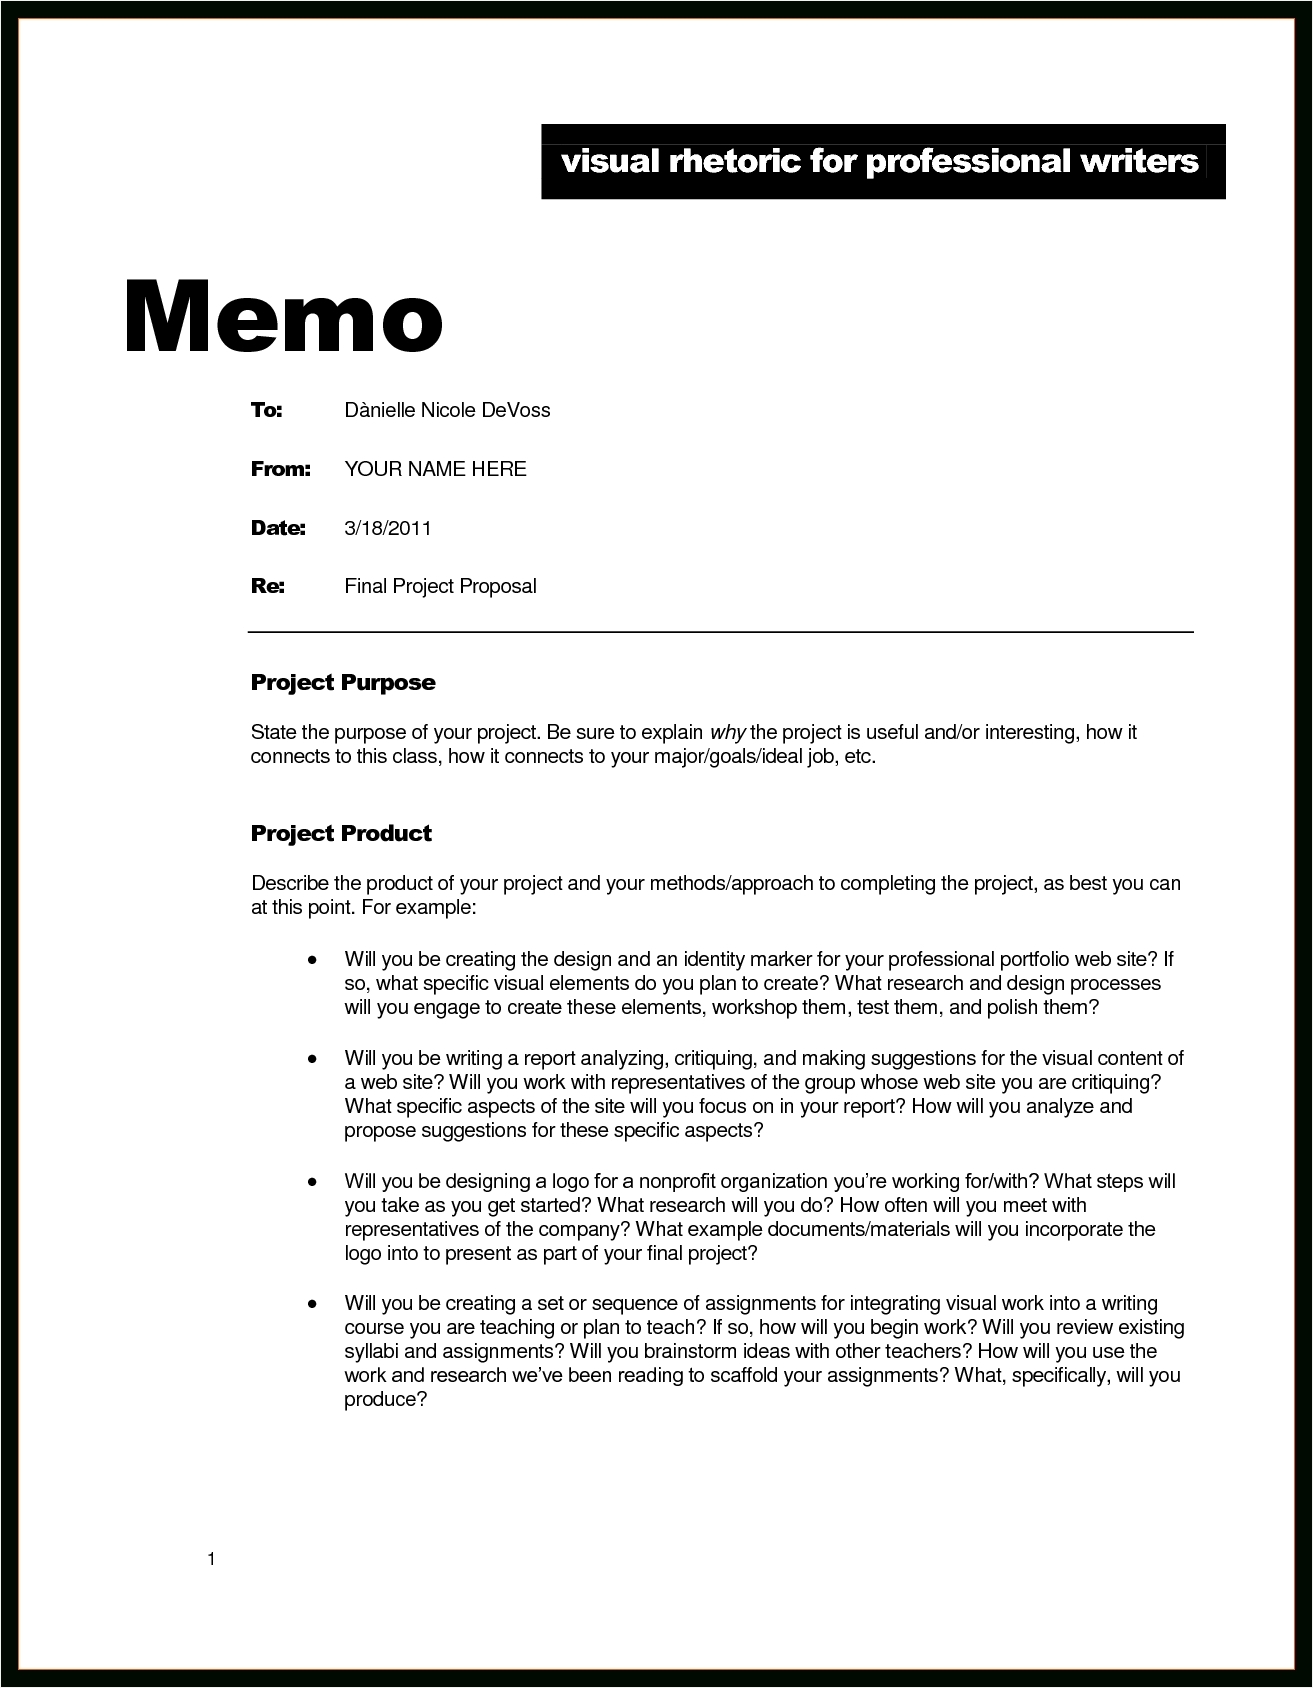 Memorandum Format With Headings | World Of Example within Memo Format Headings 22554